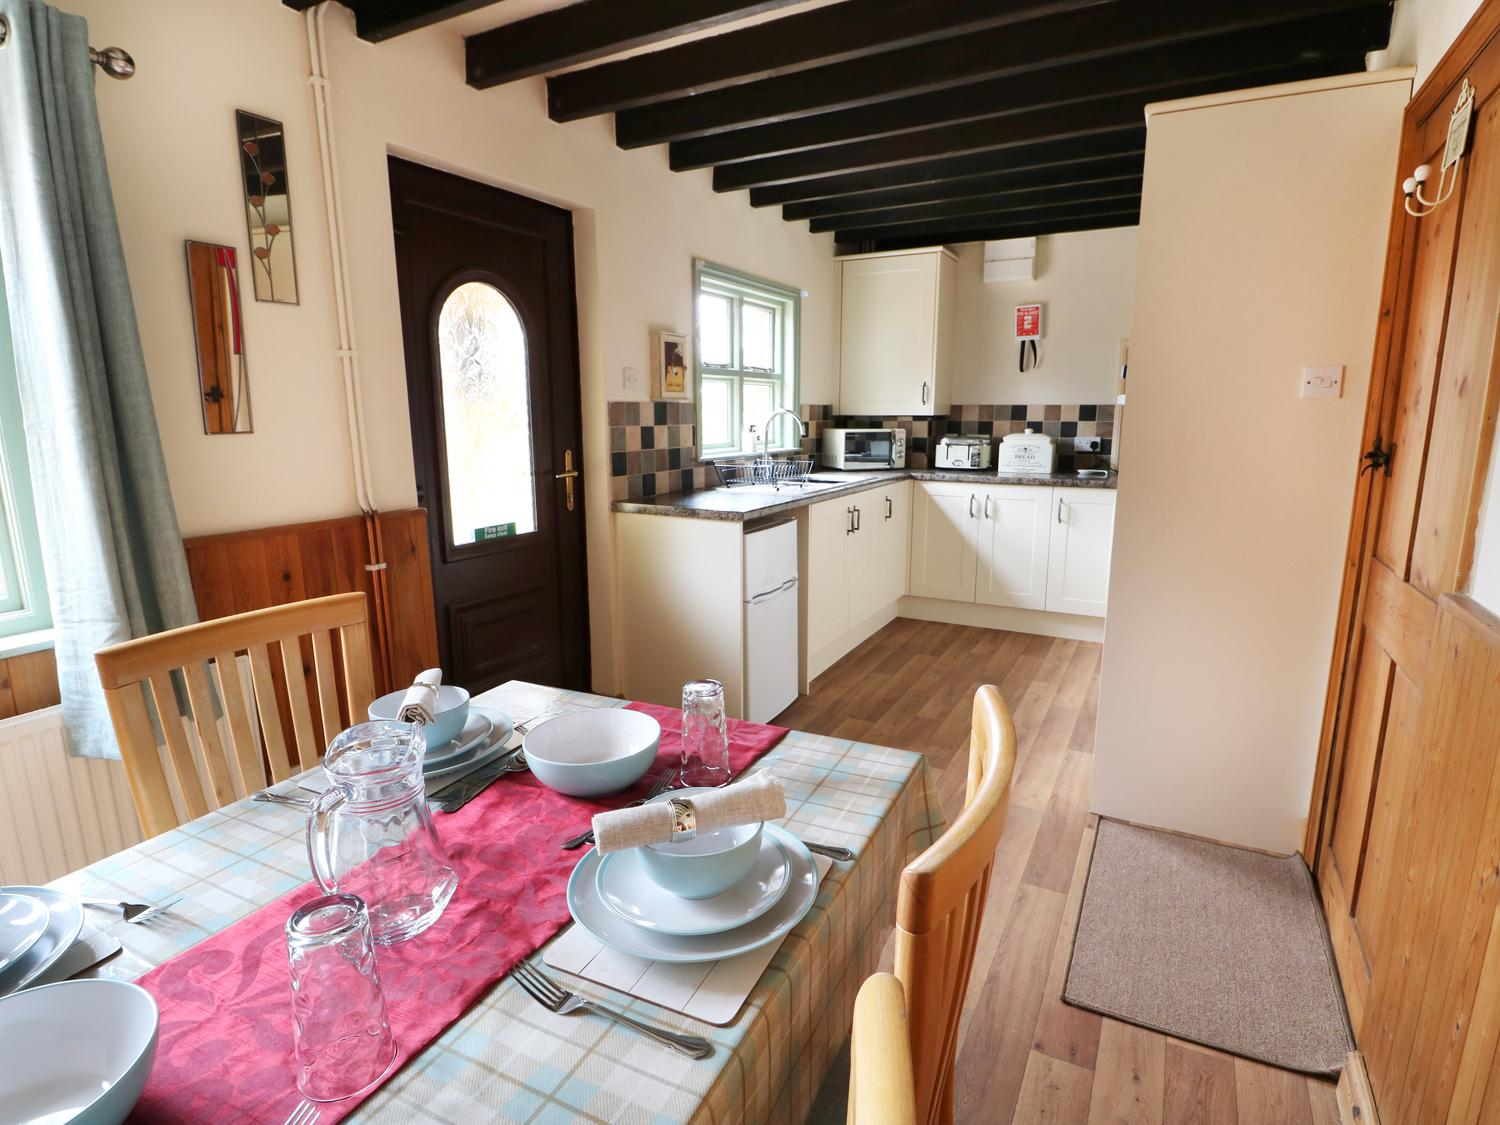 Chippers Cottage, Woodhall Spa, Lincolnshire - Holiday ...